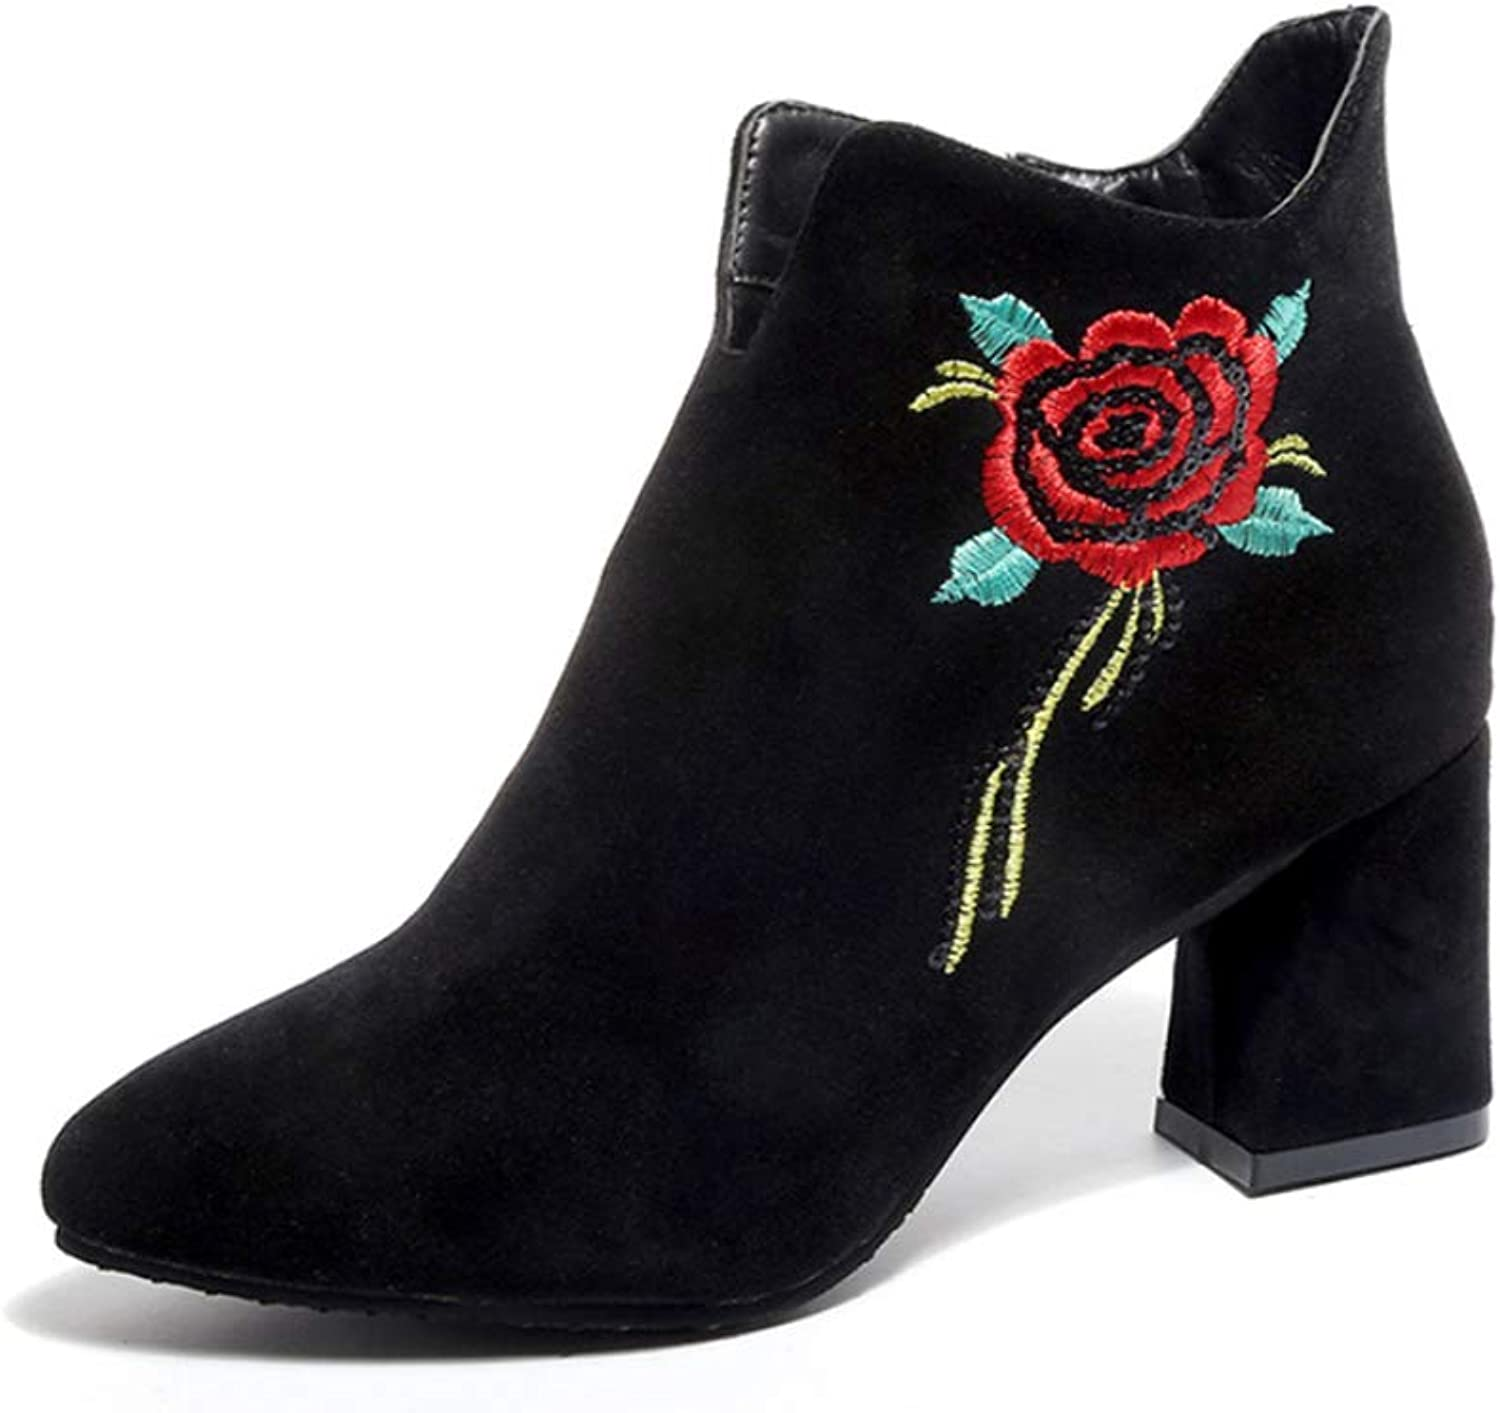 Women Boots Scrub Pointed Thick with Martin Boots Side Zipper pink Fashion Casual Boots